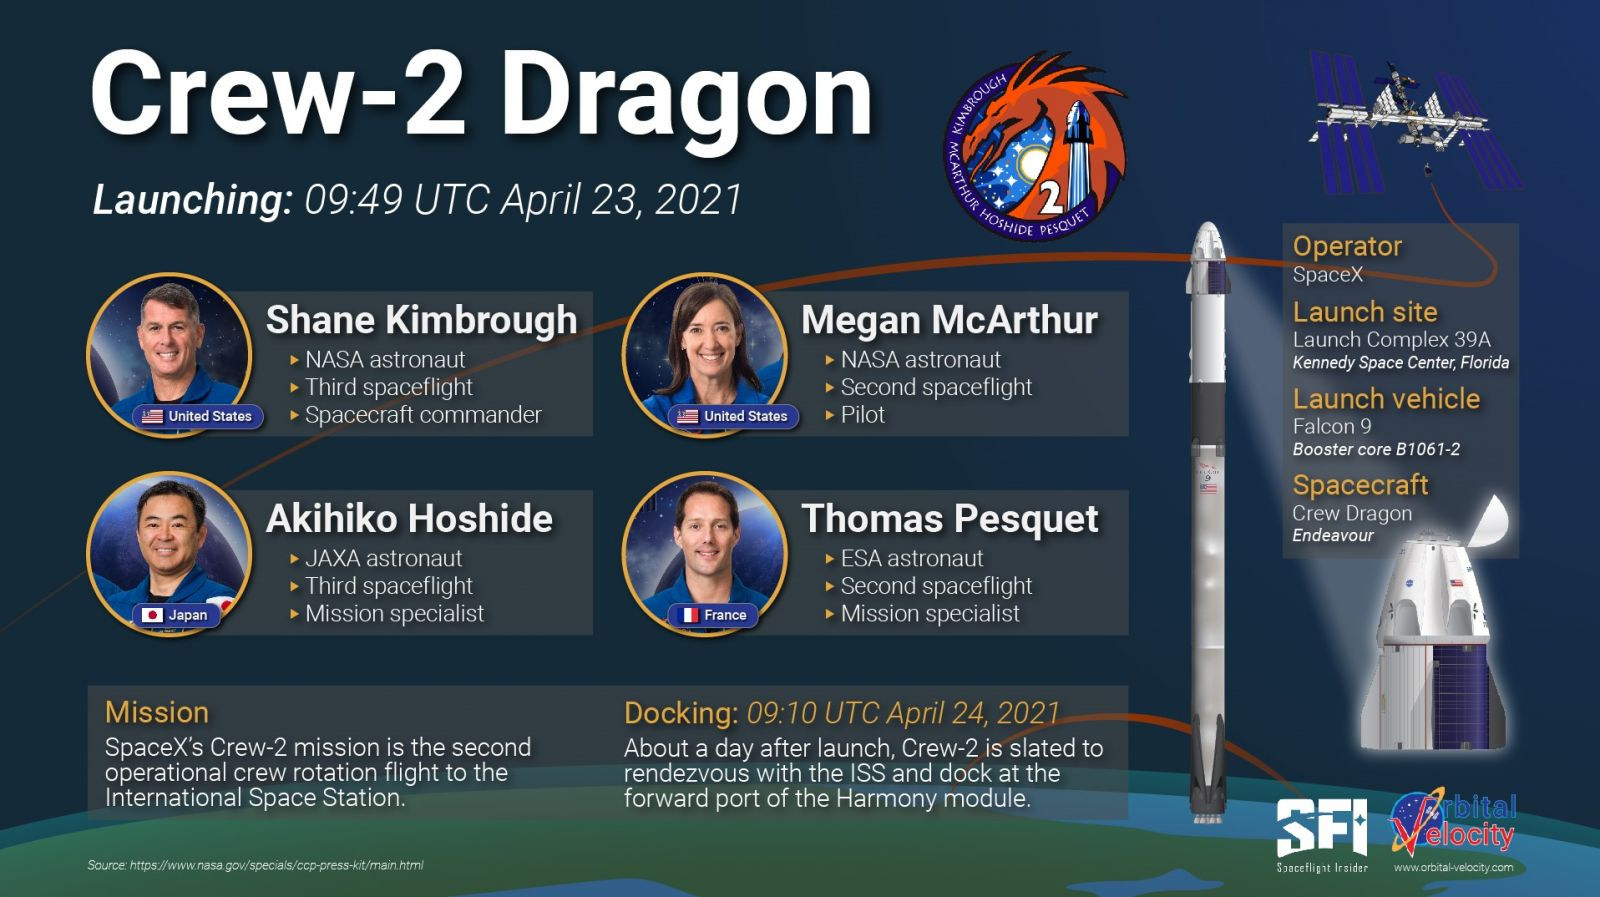 An infographic showing some of the basic Crew-2 details. Credit: Derek Richardson/Spaceflight Insider/Orbital Velocity